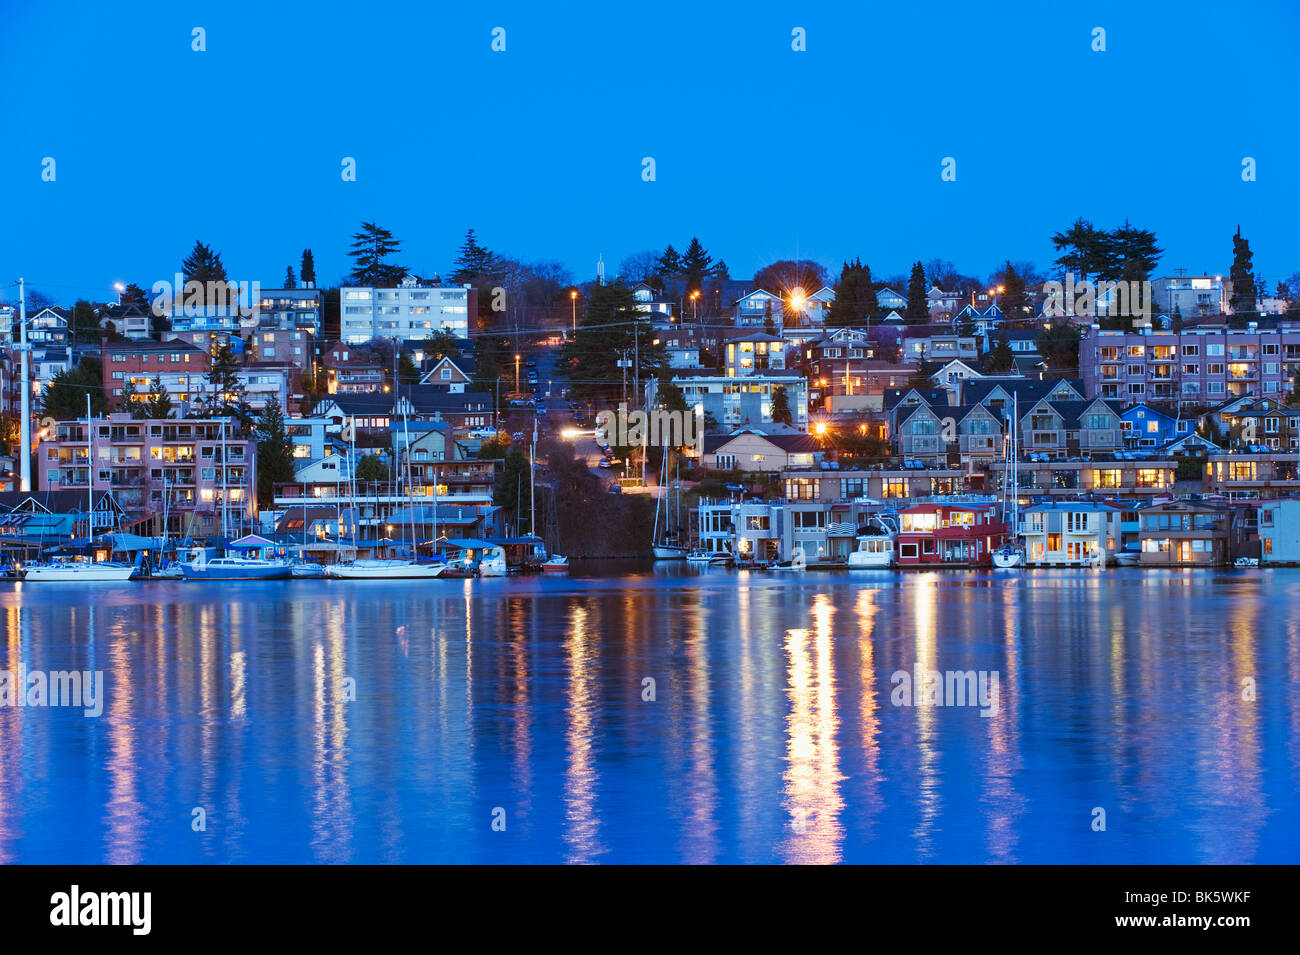 Residential houses on Lake Union, Seattle, Washington State, United States of America, North America - Stock Image